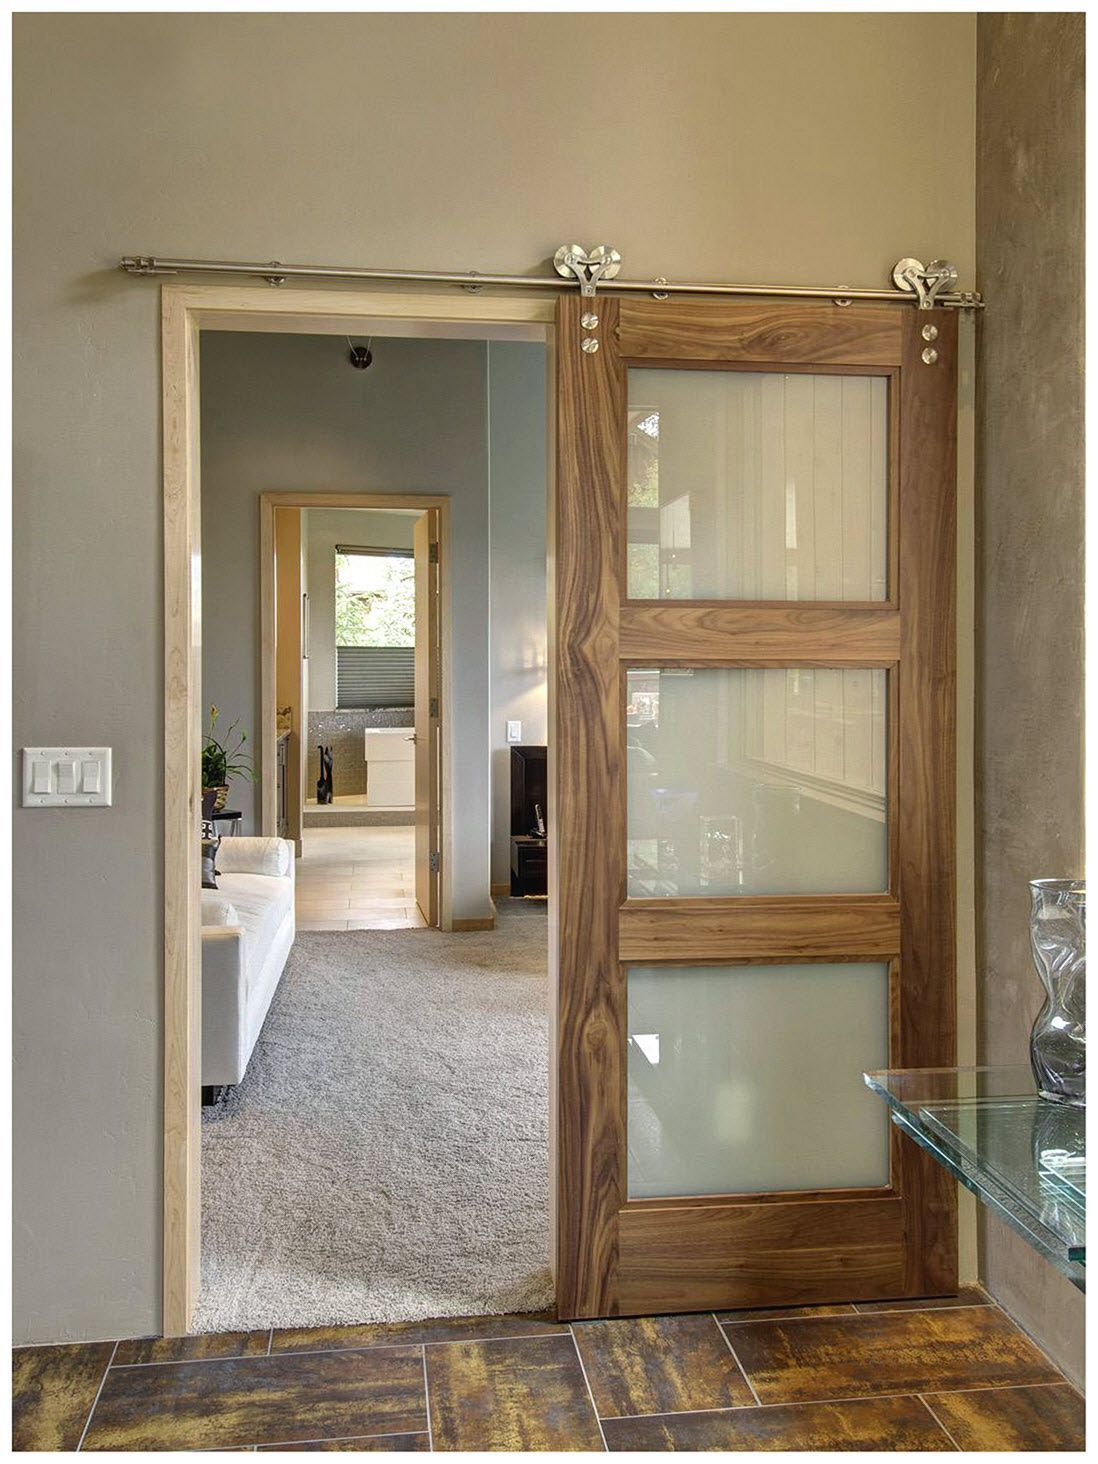 12 Modern Sliding Door Ideas That Make A Amzing Home Freshouz Com Modern Sliding Doors Barn Door Designs Sliding Doors